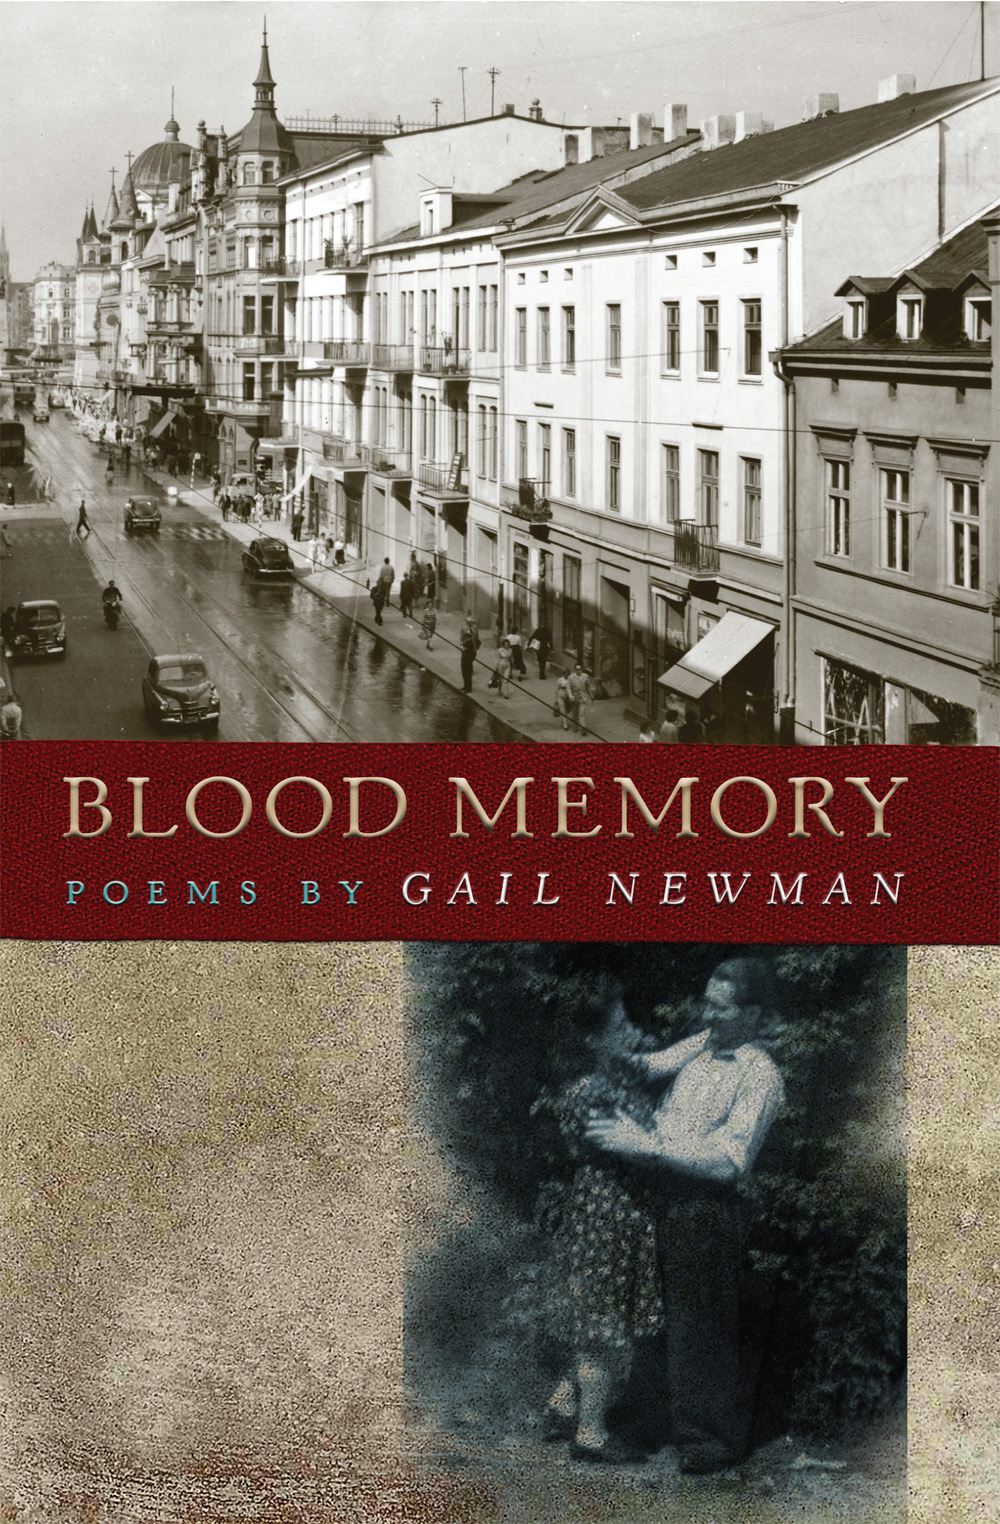 Blood Memory, Poems by Gail Newman